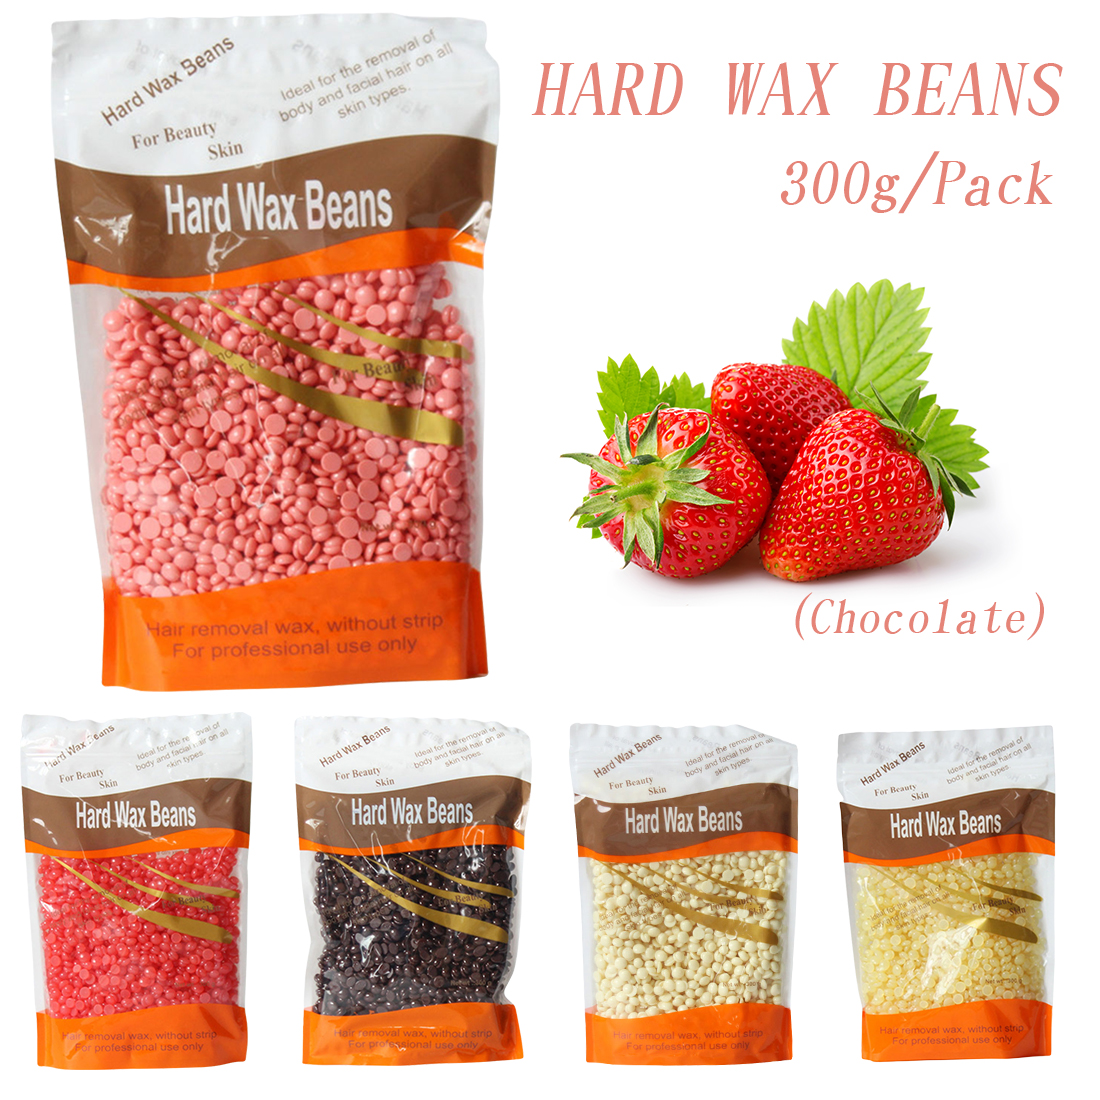 5 Flavors Paper Free Depilatory Wax Hair Removal Solid Hard Wax Beans 300g/Pack for Men/Women Body Hair Epilation Bikini Arm парафин oneball x wax 5 pack assorted